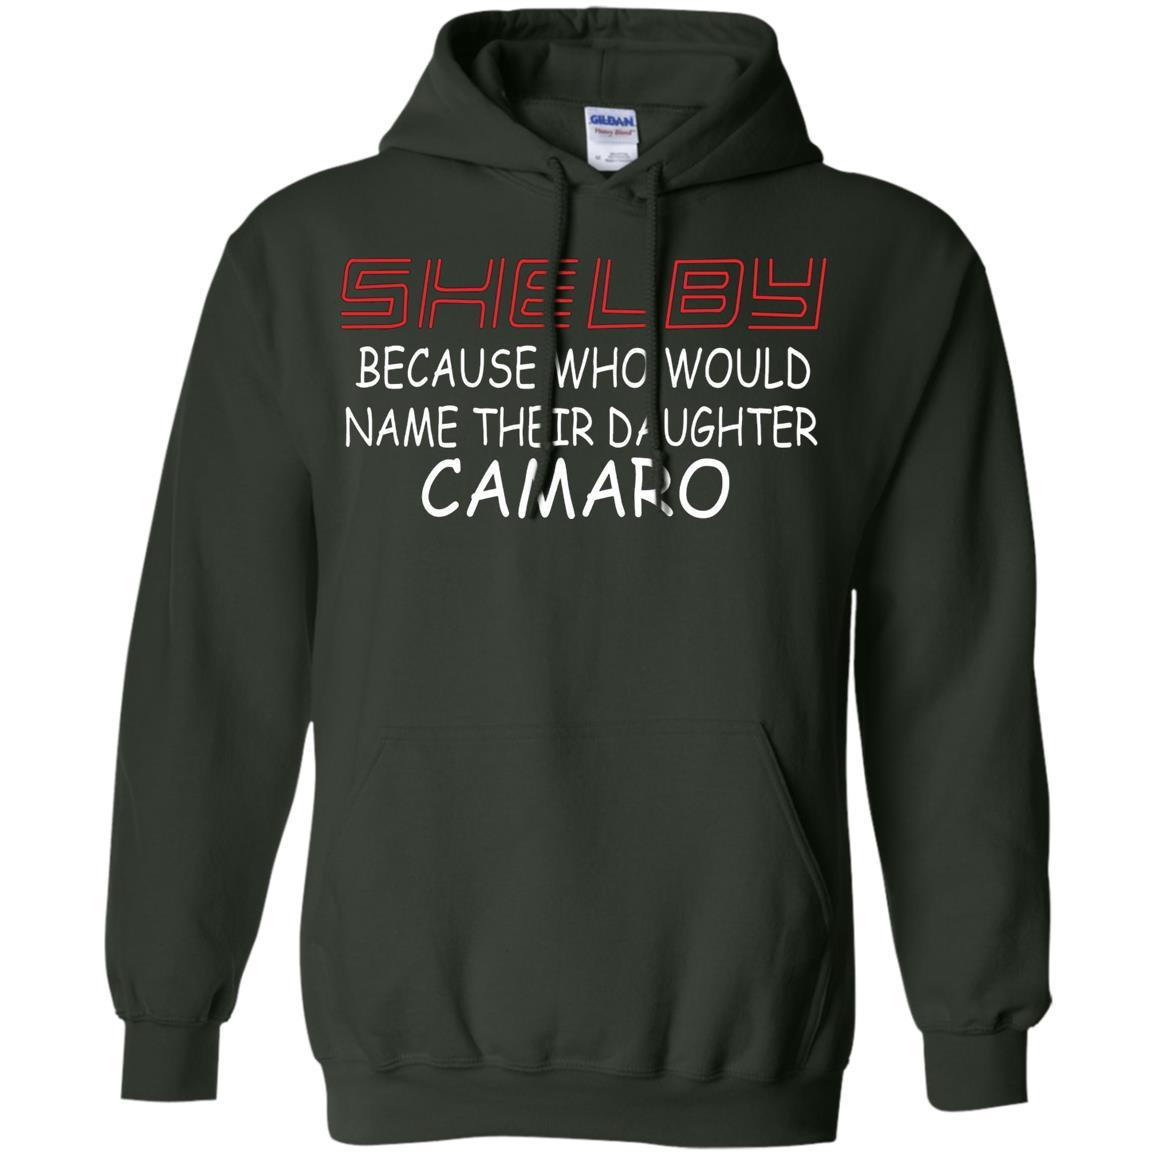 Shelby Because Who Would Name Their Daughter Camaro - Pullover Hoodie Forest Green / 5XL